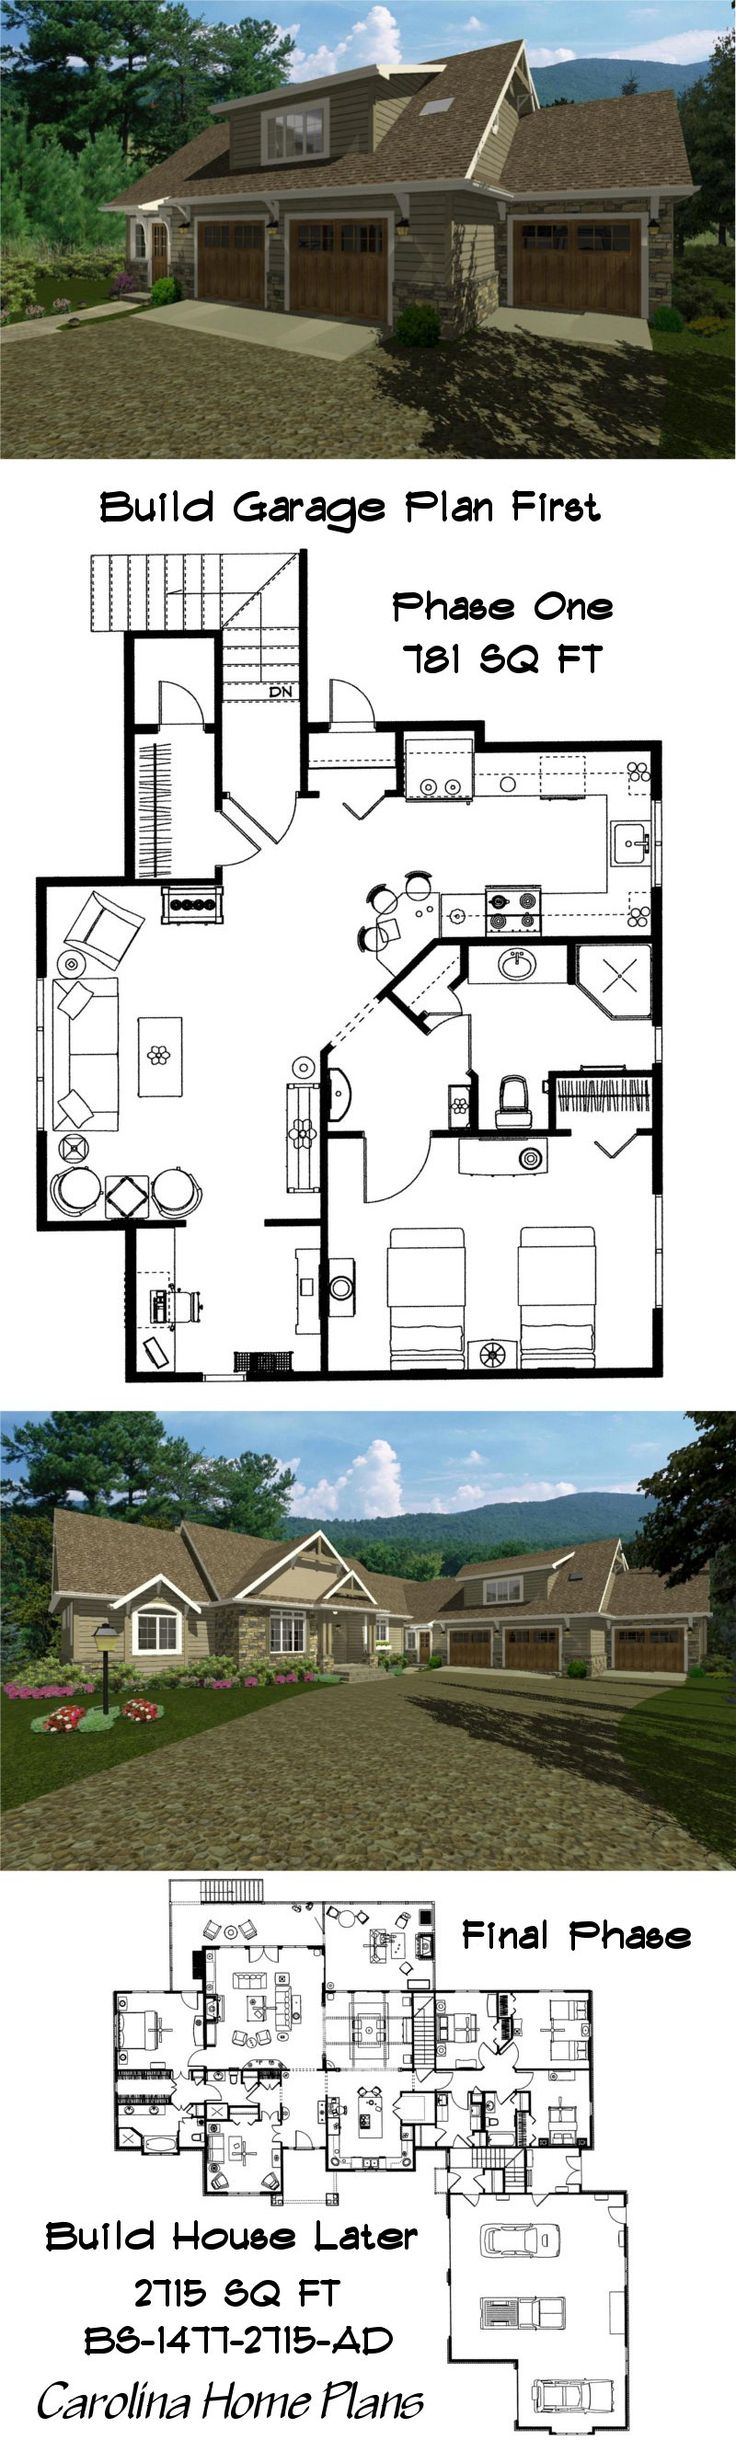 best 25 garage apartments ideas on pinterest garage apartment build this delightful 1 bedroom garage apartment first to live in while building the luxurious craftsman